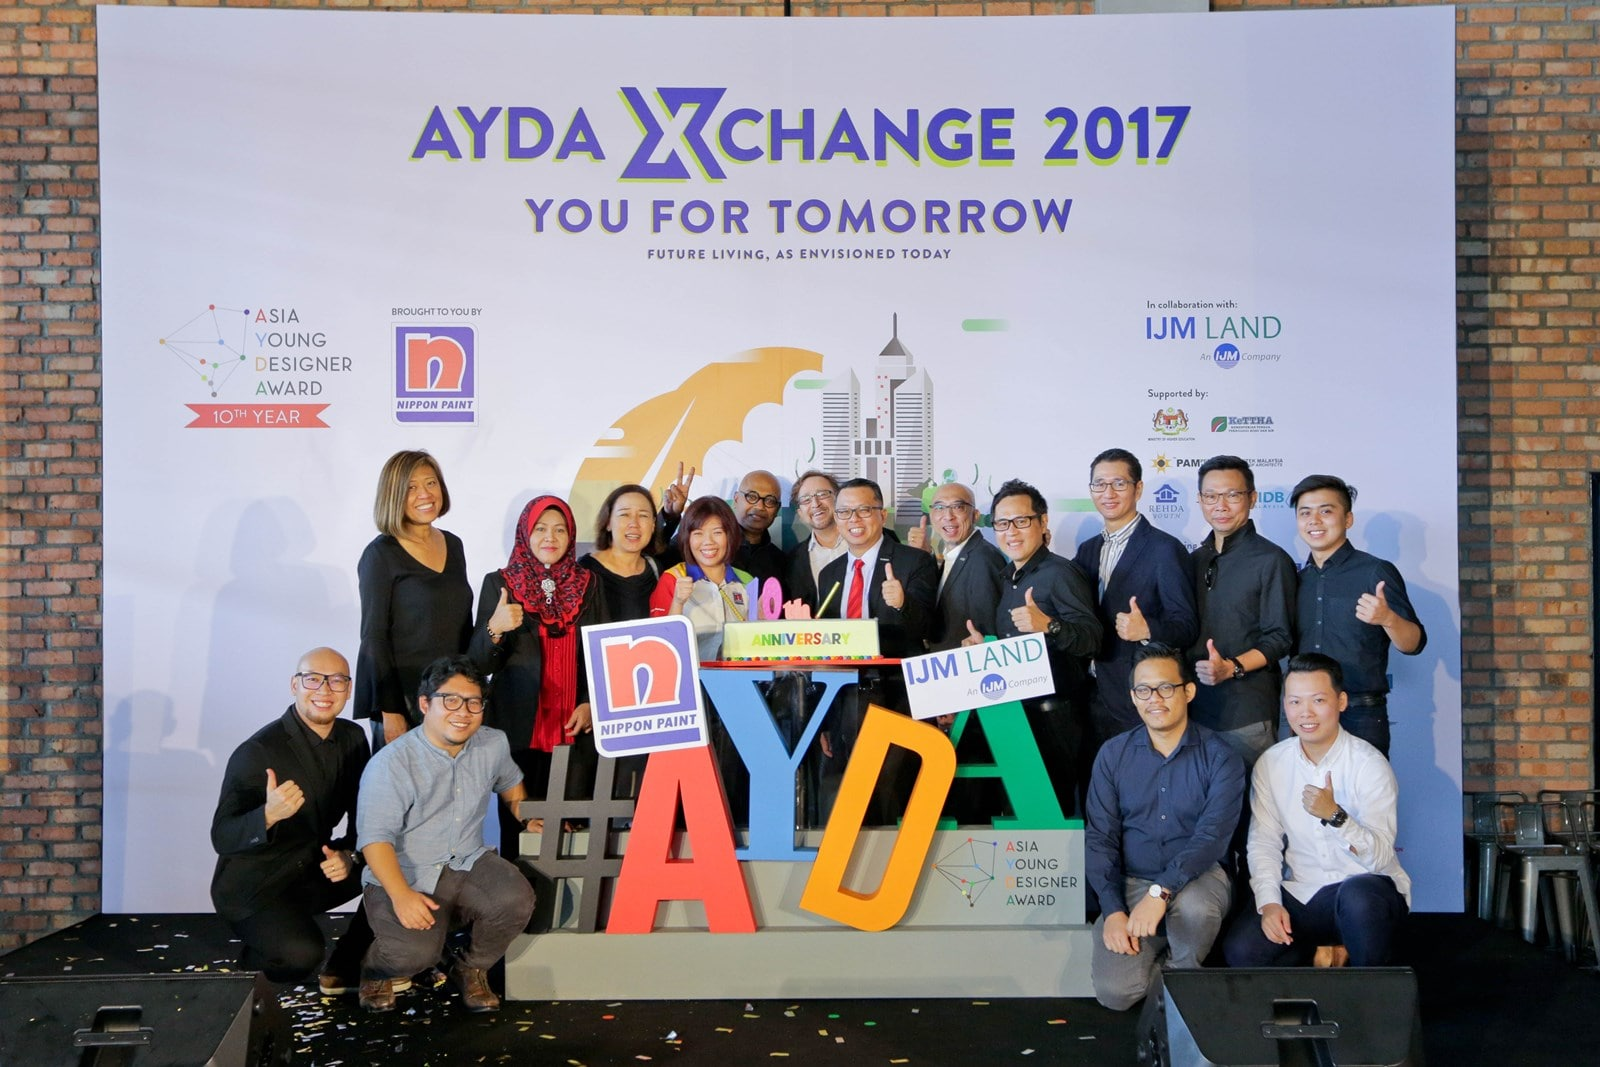 Launching the first AYDA XChange and the theme for AYDA 2017